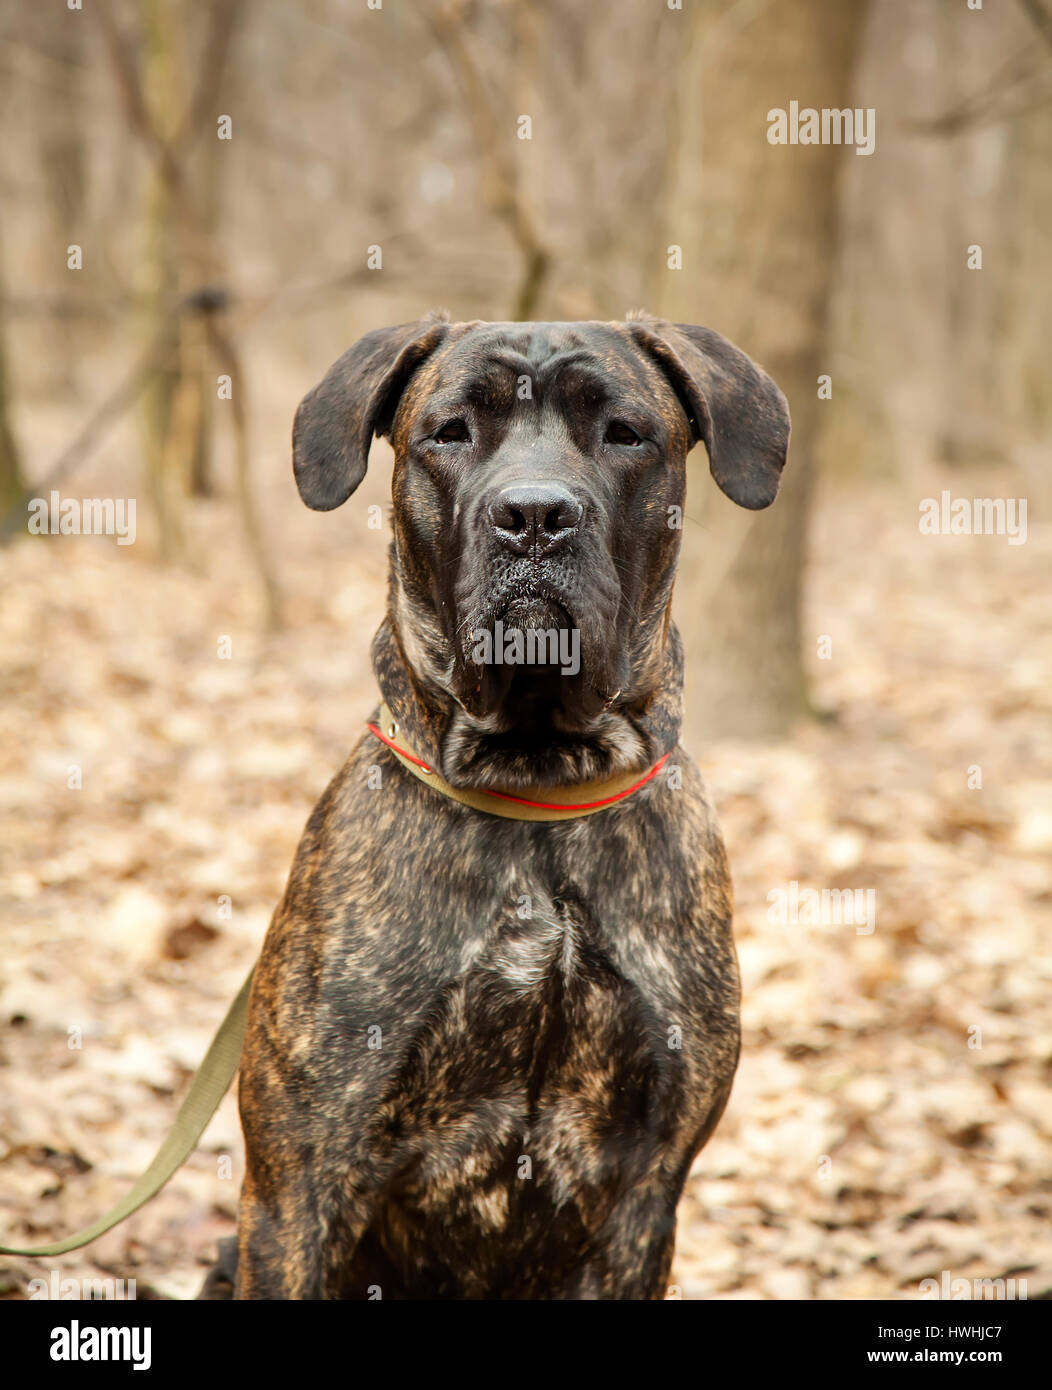 Cane Corso dog portrait close up in autumn forest - Stock Image